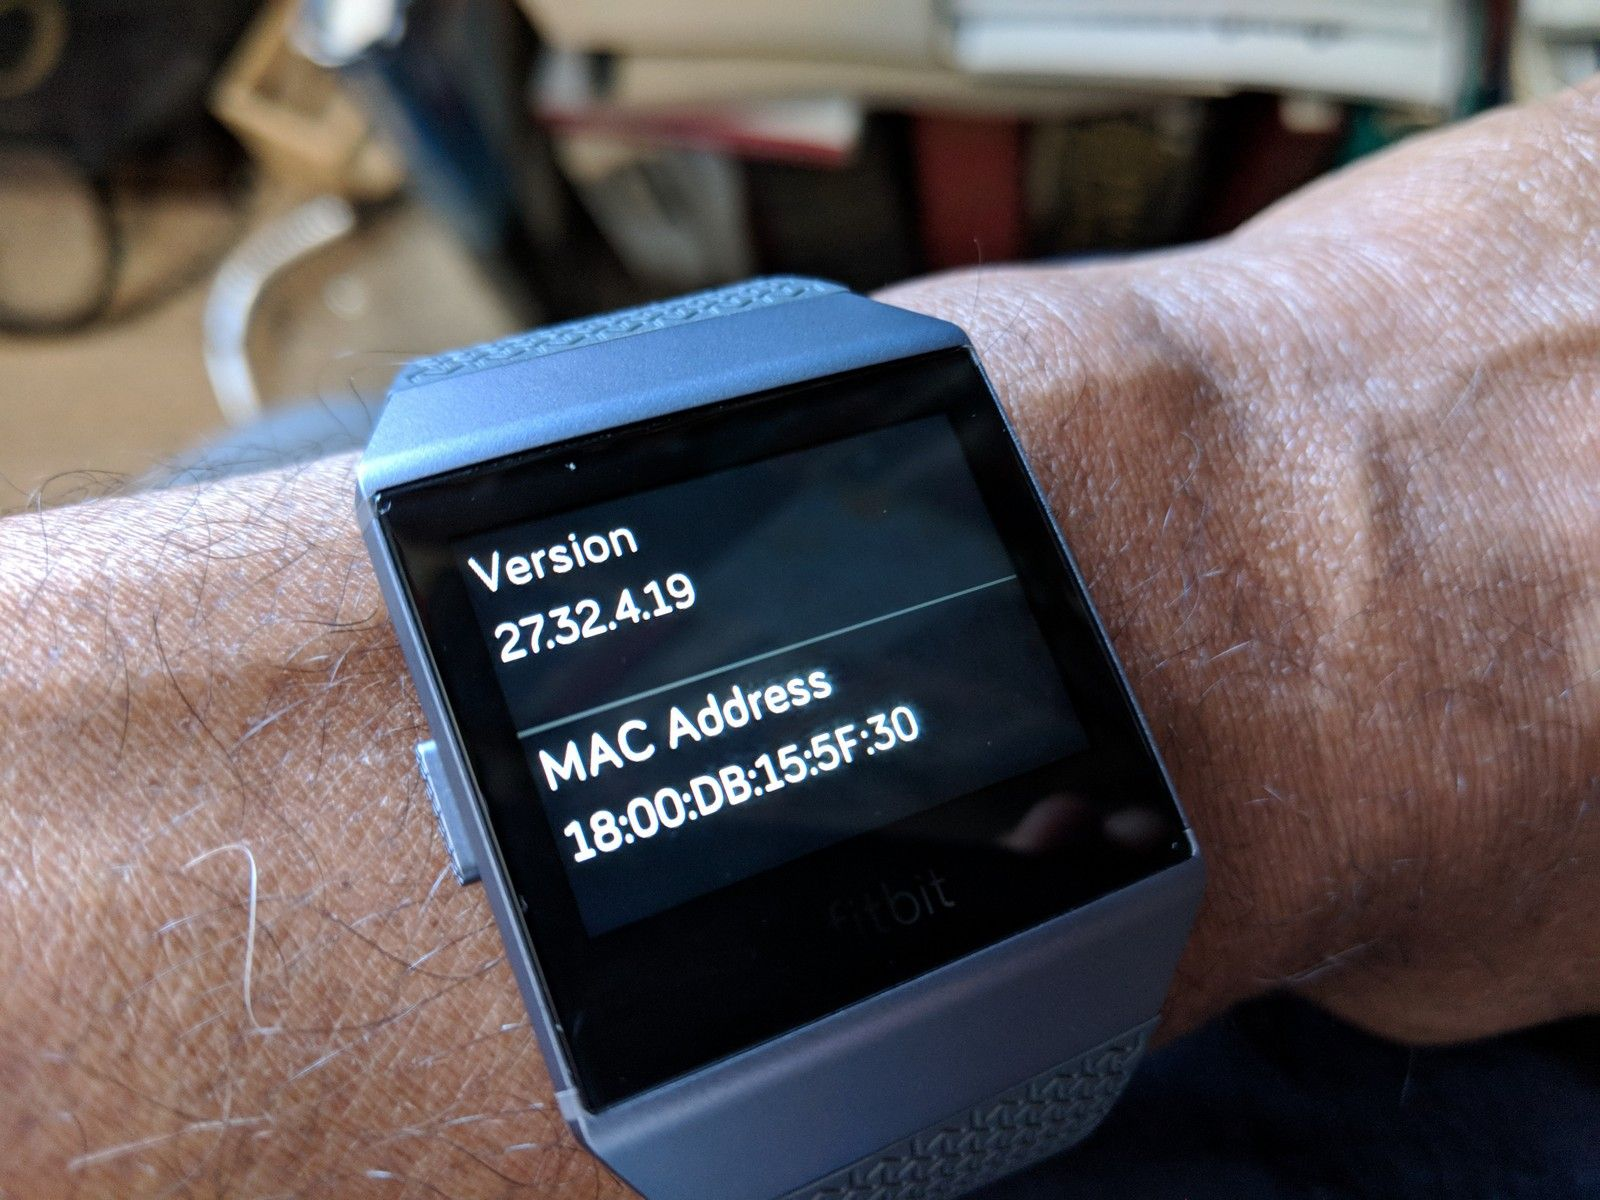 Ionic Firmware release - 27 32 4 19 - Fitbit Community